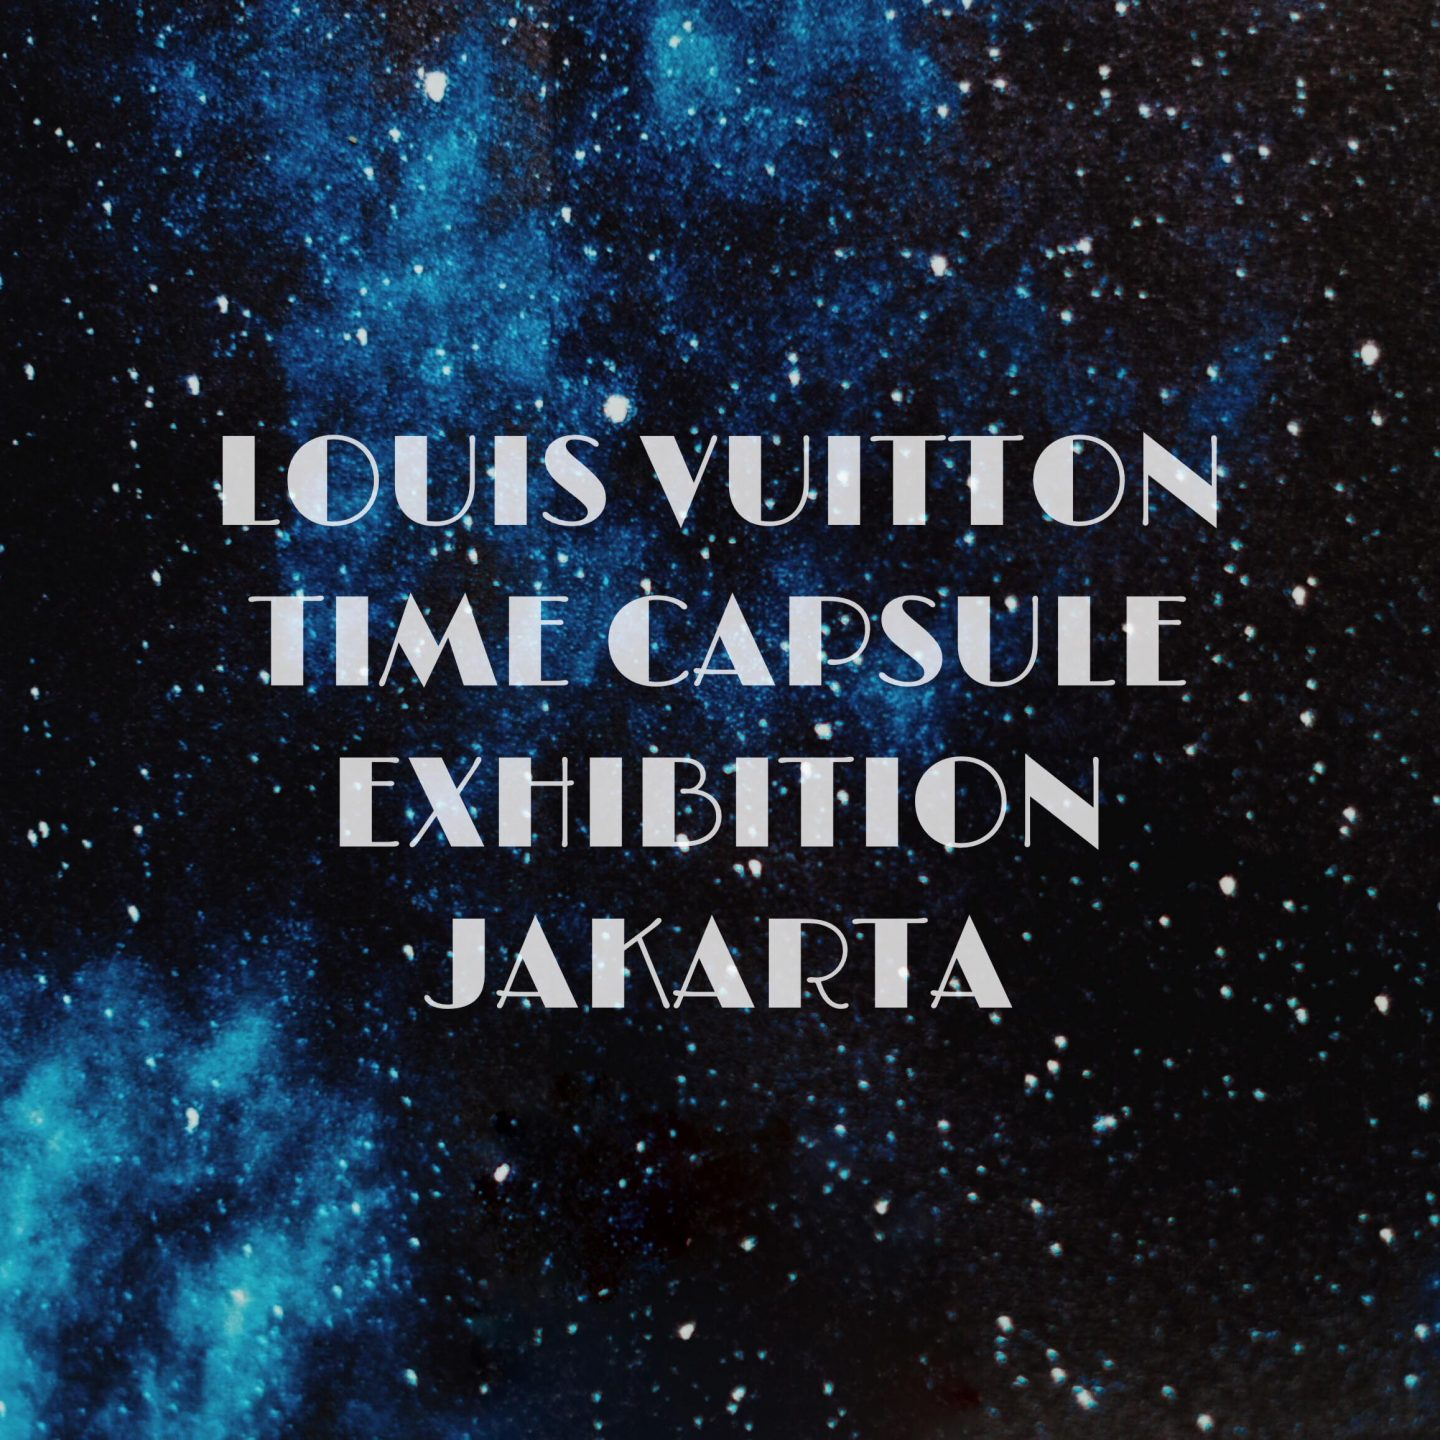 LOUIS VUITTON TIME CAPSULE EXHIBITION JAKARTA